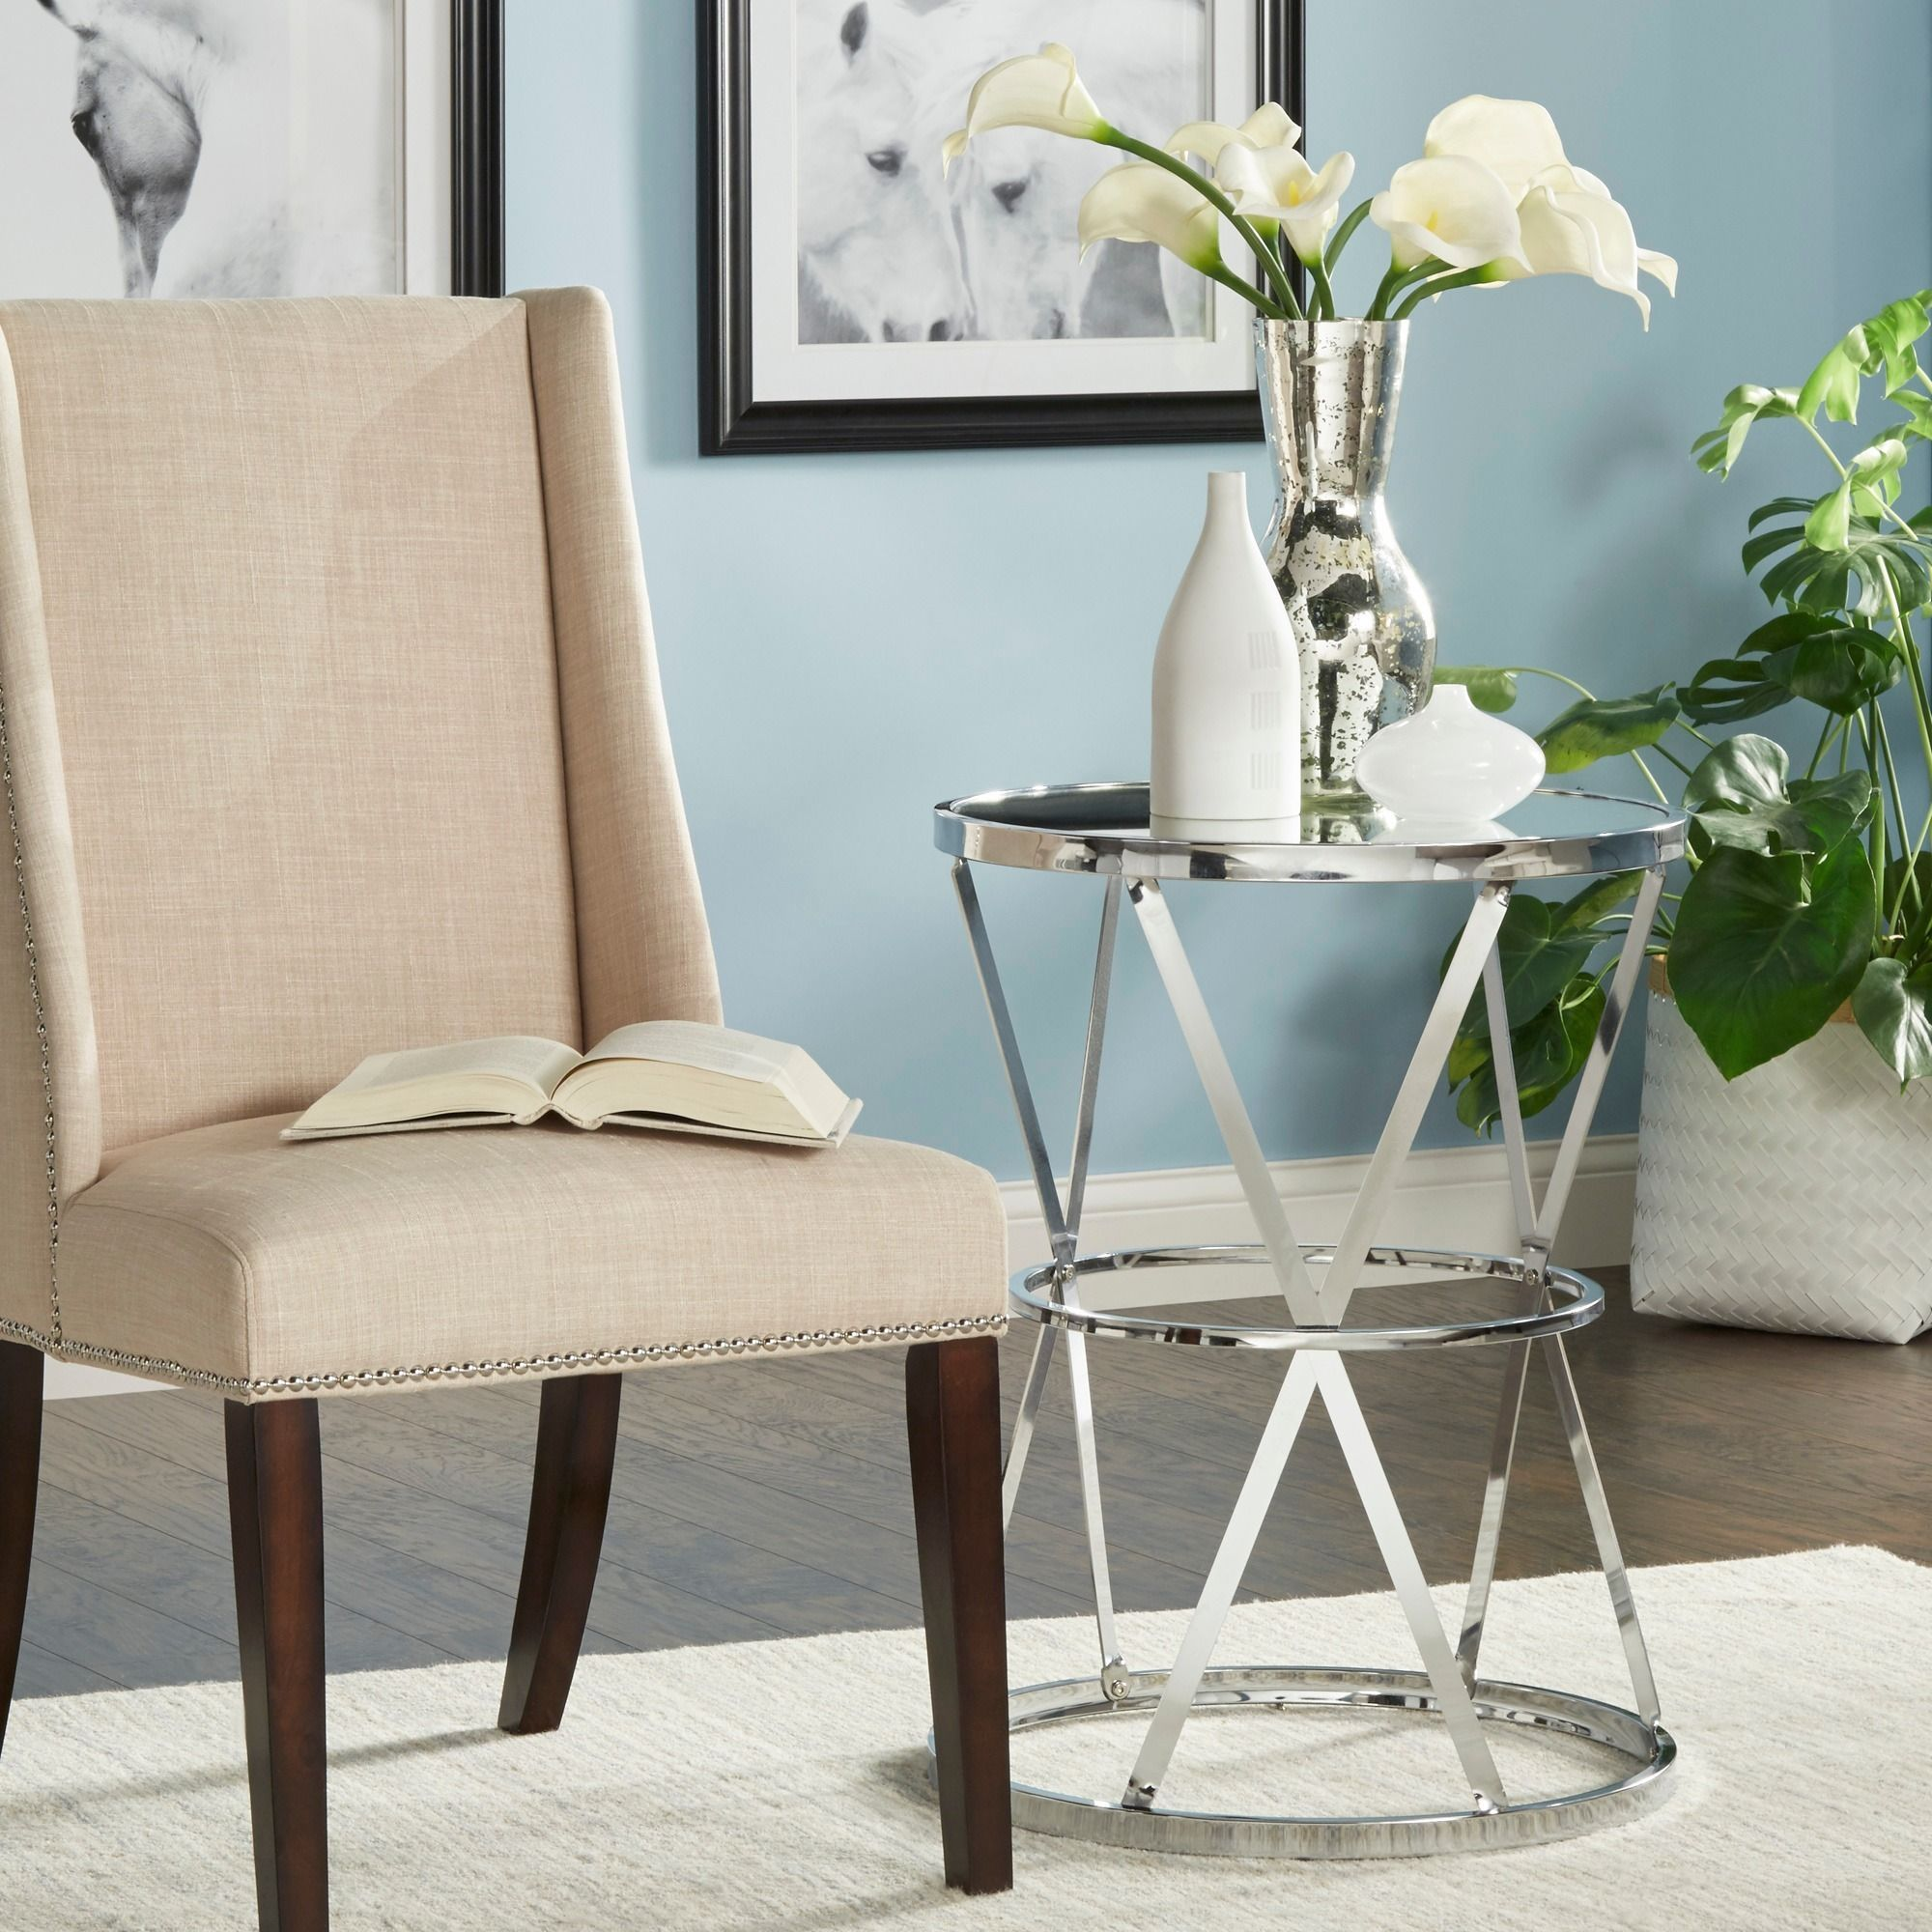 Berke Mirrored Top Round End Side Table by iNSPIRE Q Bold by iNSPIRE Q